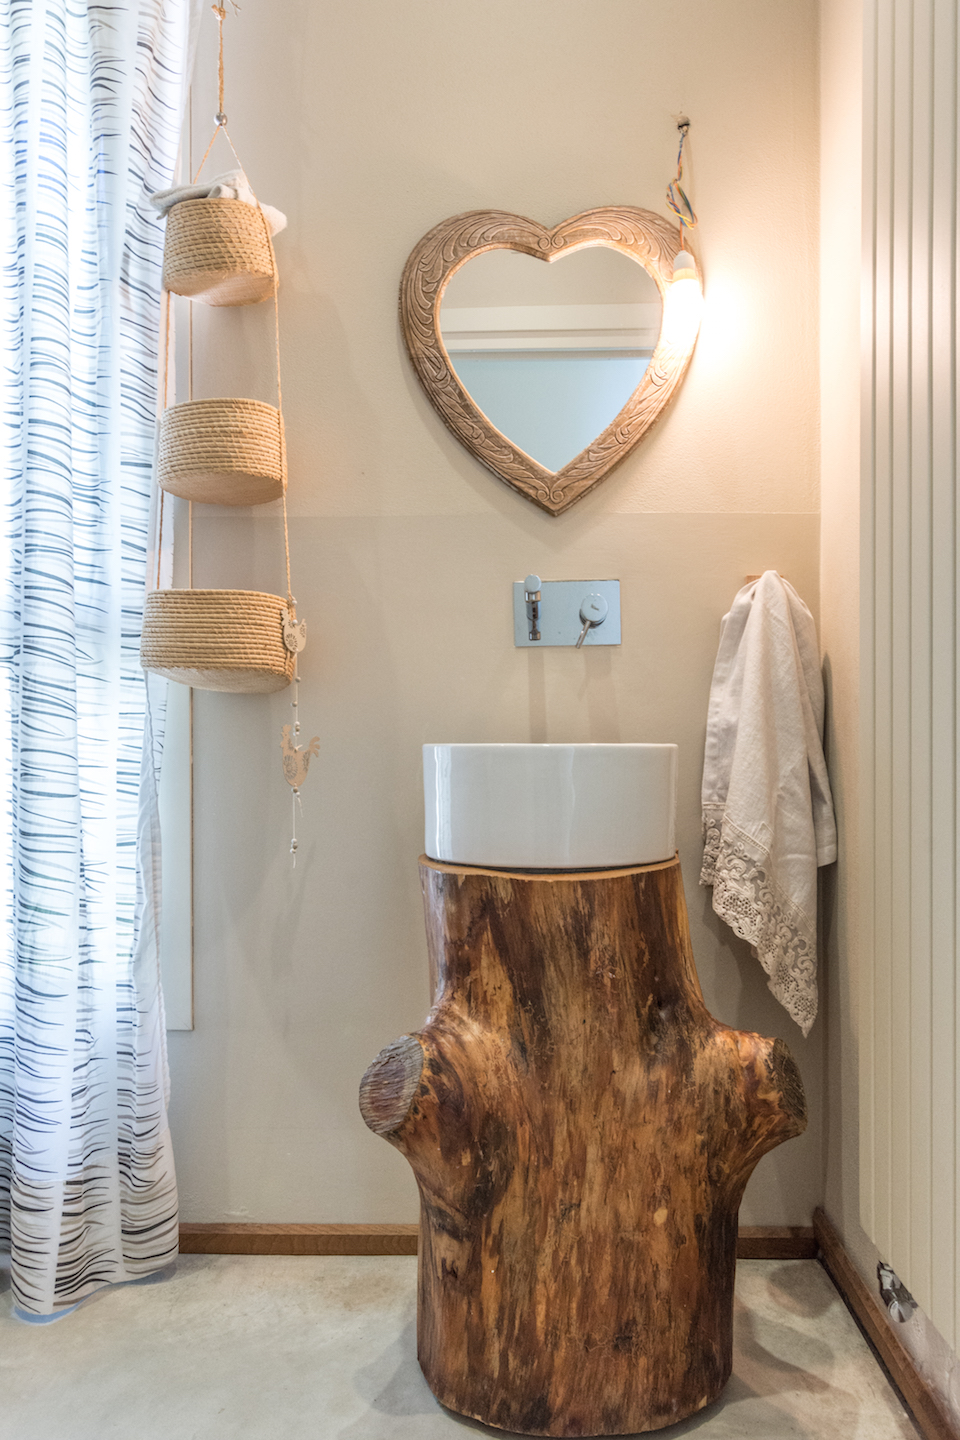 LEGNO WOOD TRONCO  bagno bathroom diy faidate riciclo recupero homestaging mirna casadei interiors real estate home vendo casa annunci immobiliare-8322.jpg